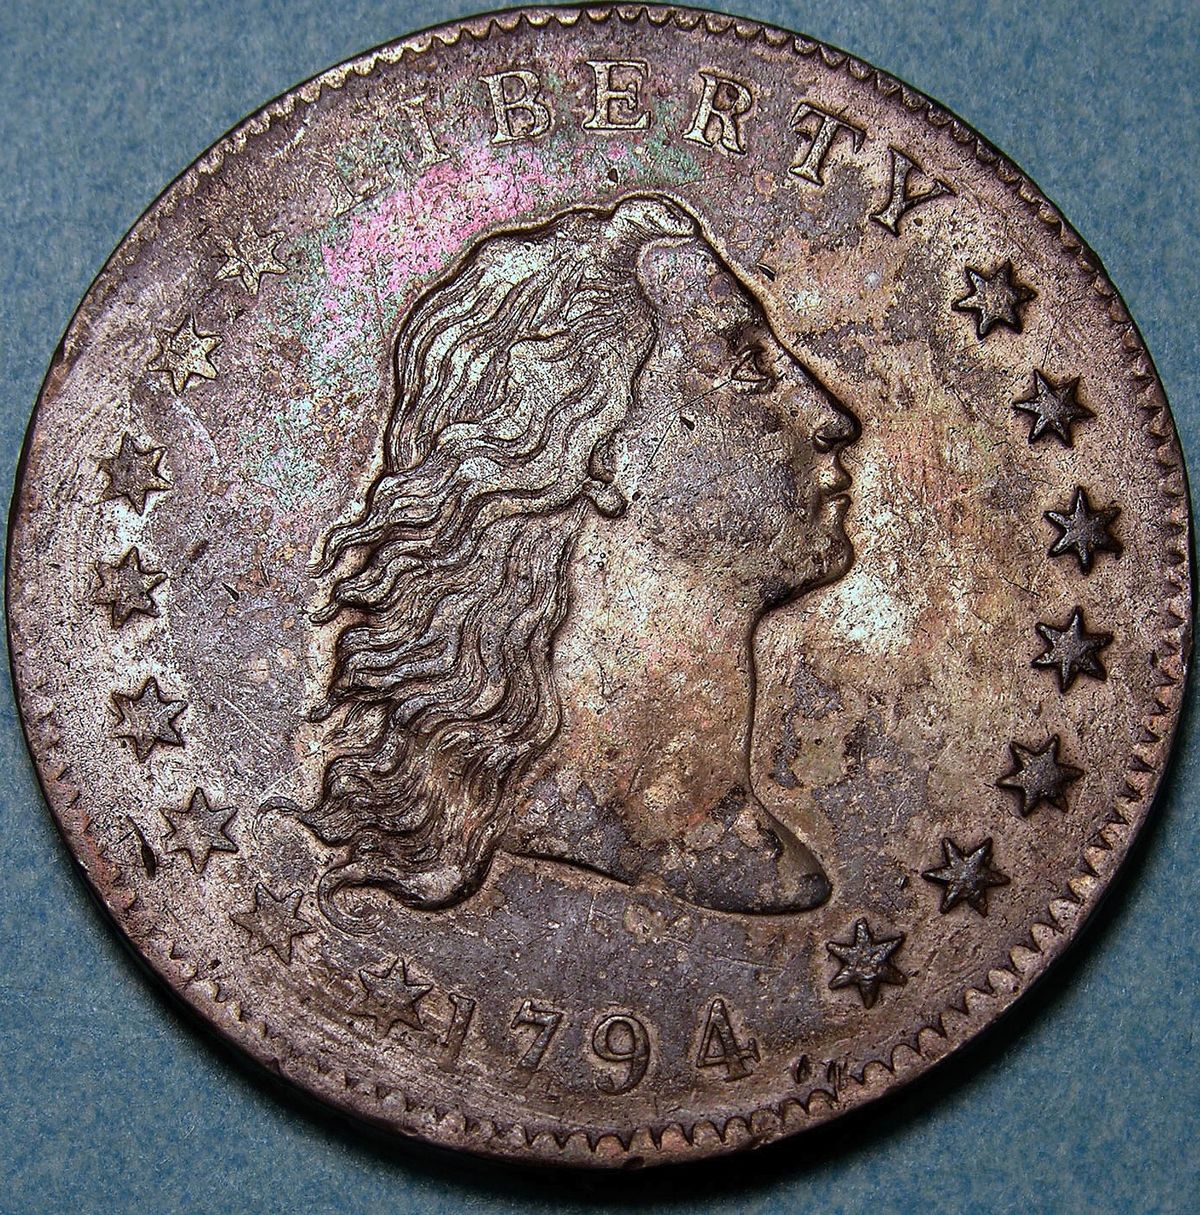 Flowing Hair Dollar Wikipedia